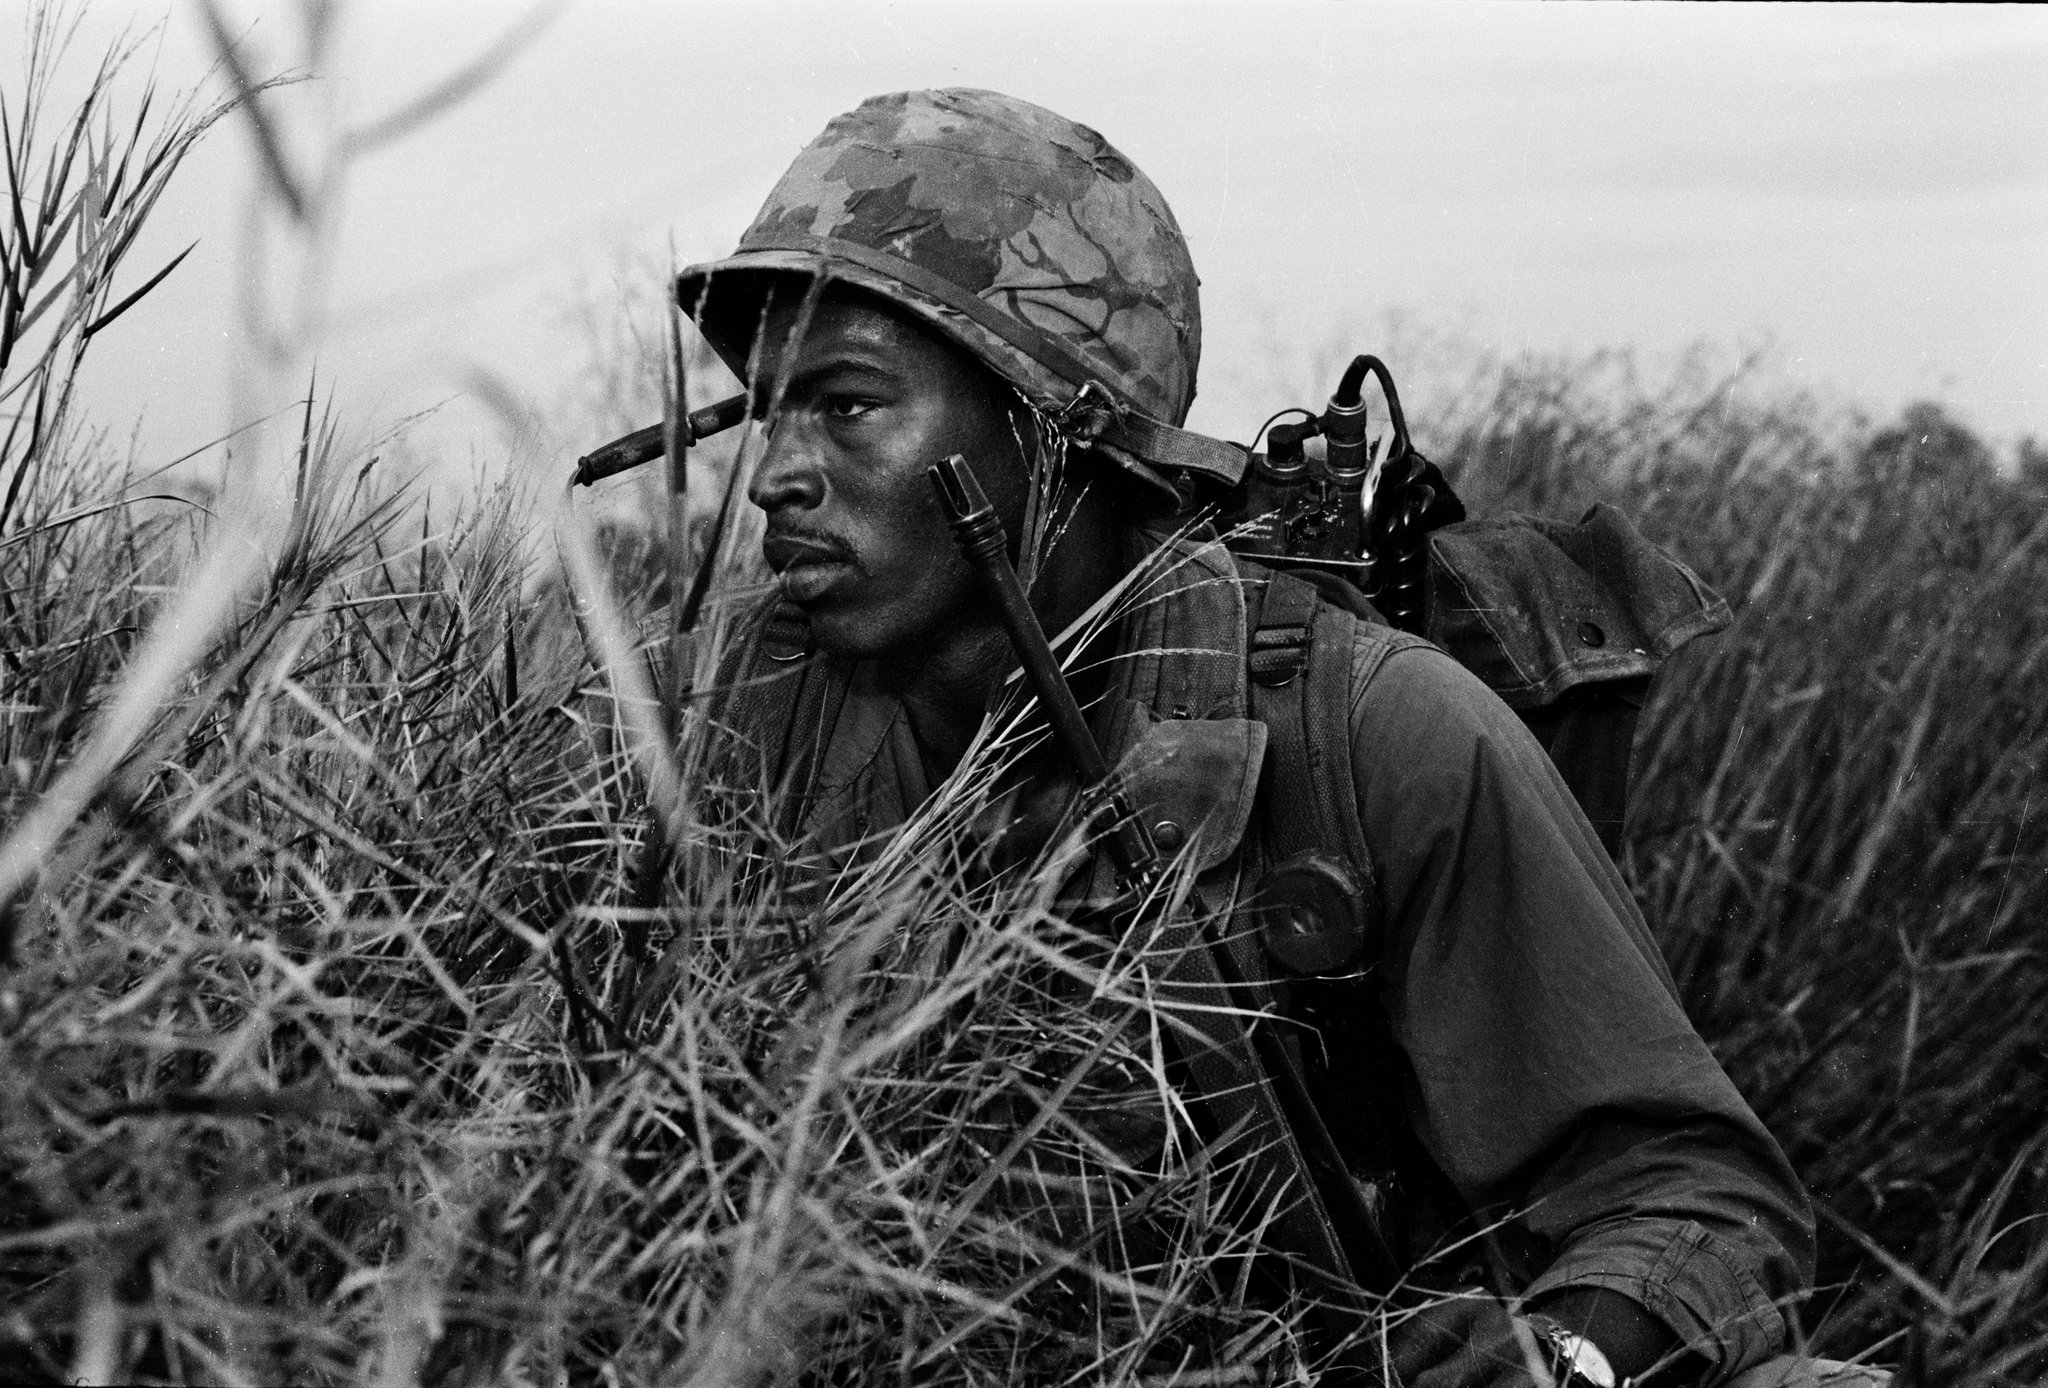 Leroy Lens In Her Own Words Photographing The Vietnam War The New York Times